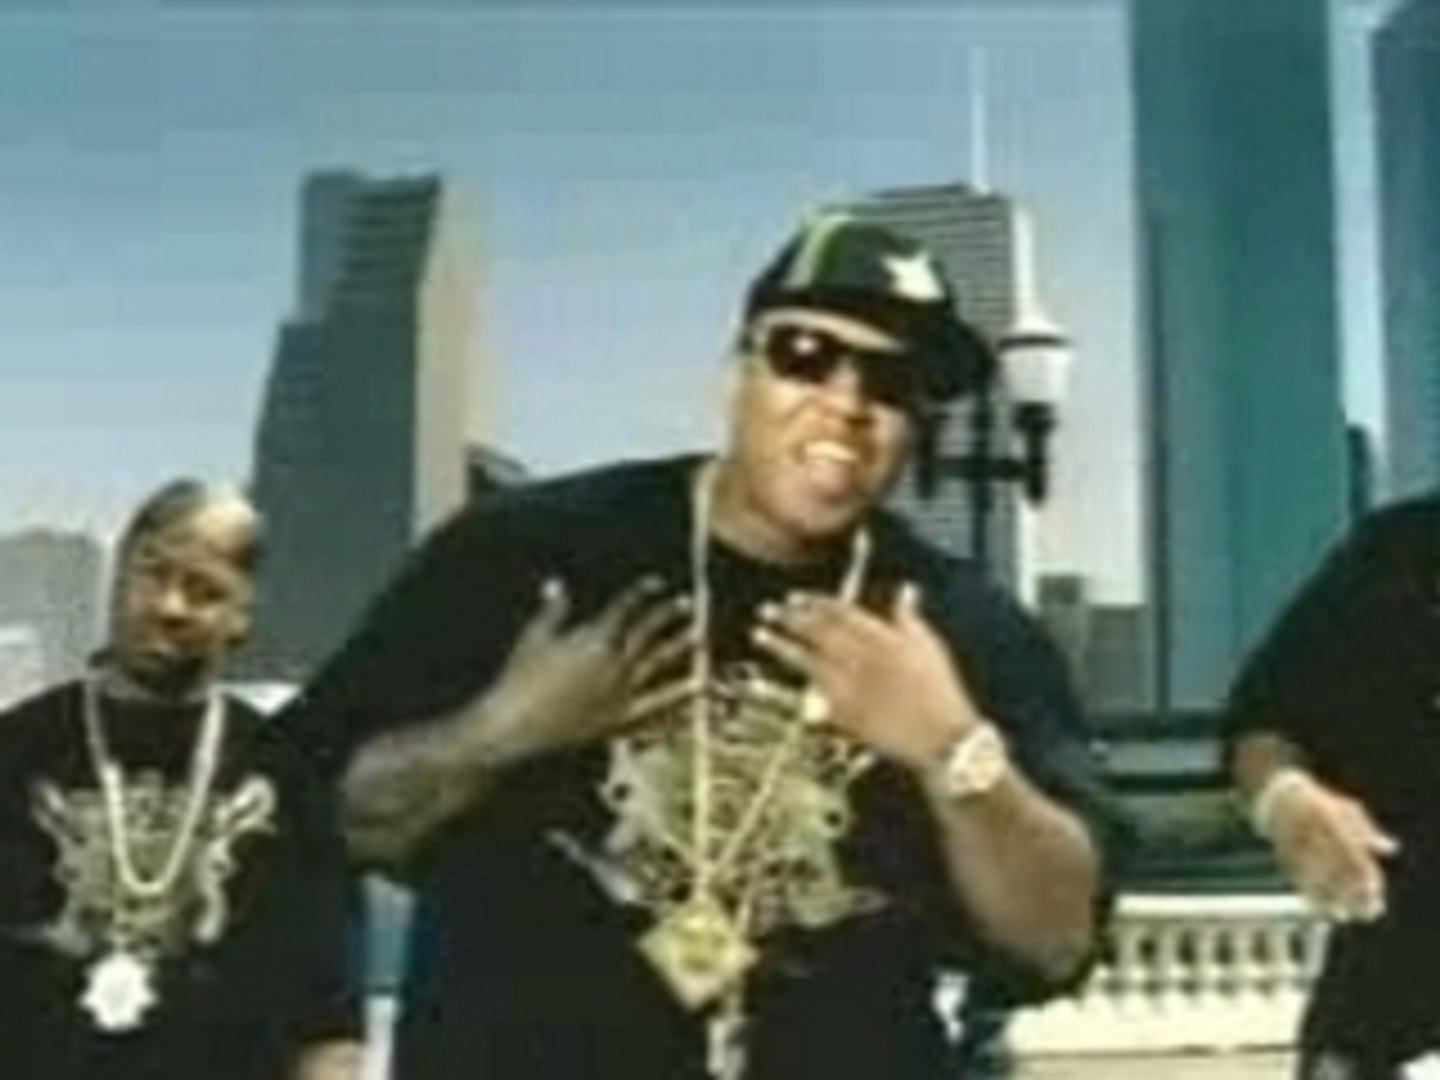 Boss hogg outlawz ft slim thug-recognize a playa